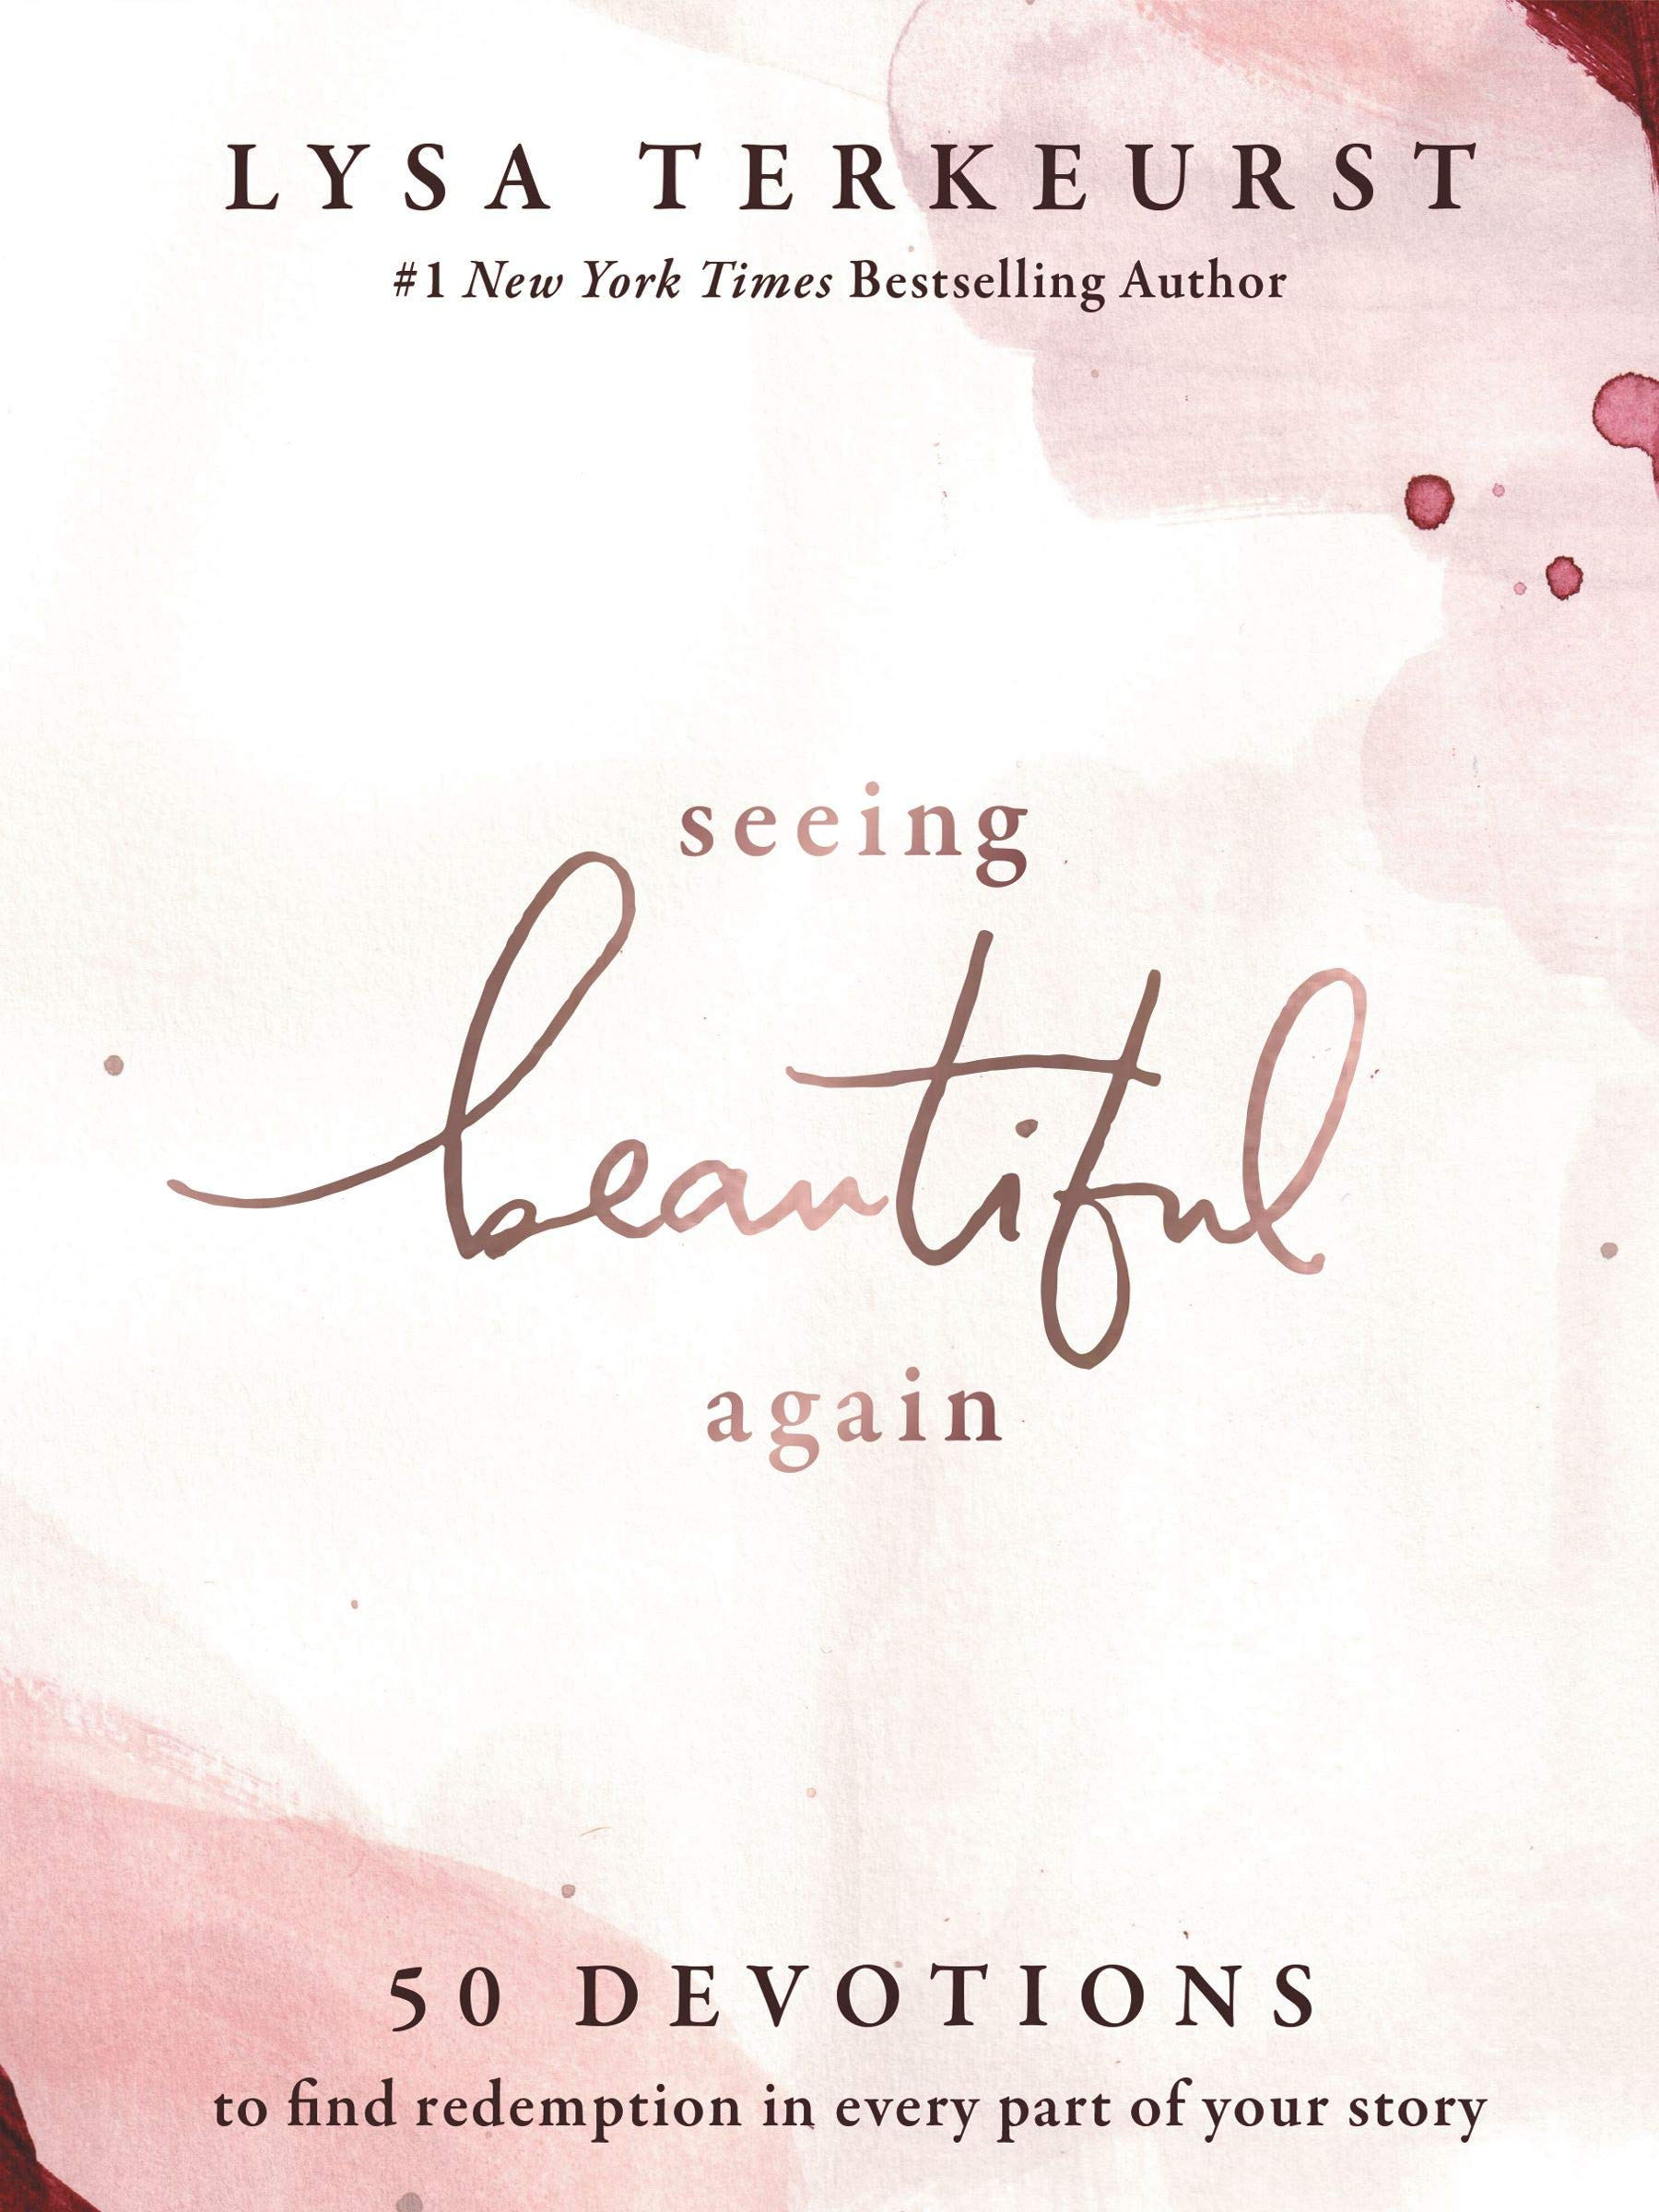 Seeing Beautiful Again: 50 Devotions to Find Redemption in Every Part of Your Story WeeklyReviewer